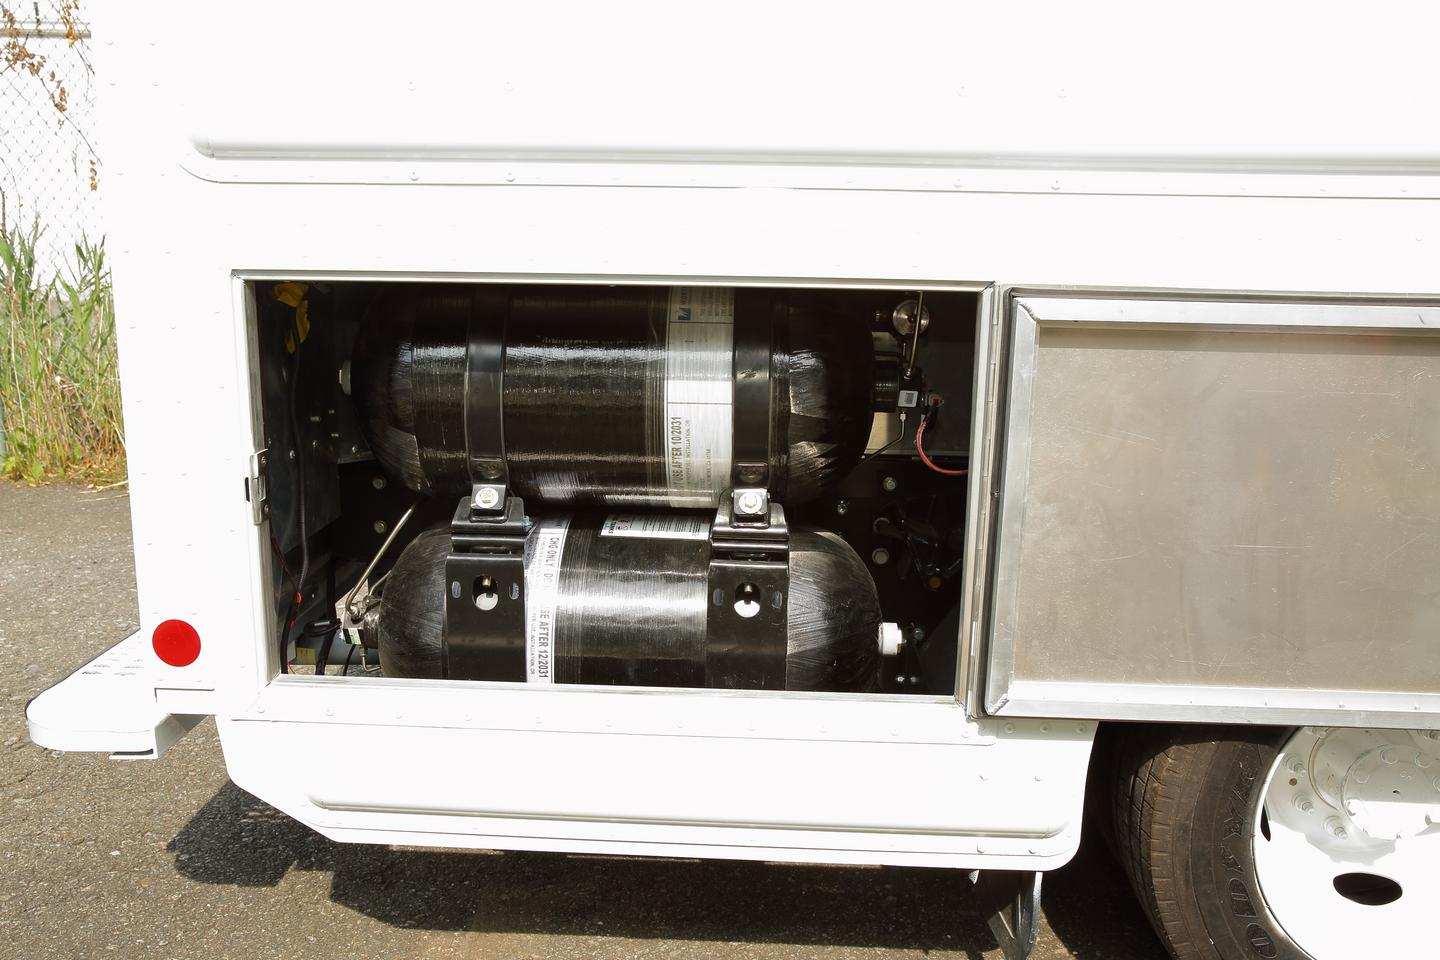 Hydrogen storage on the Workhorse EGEN with Plug Power additions adds about 160 percent to the range of the van